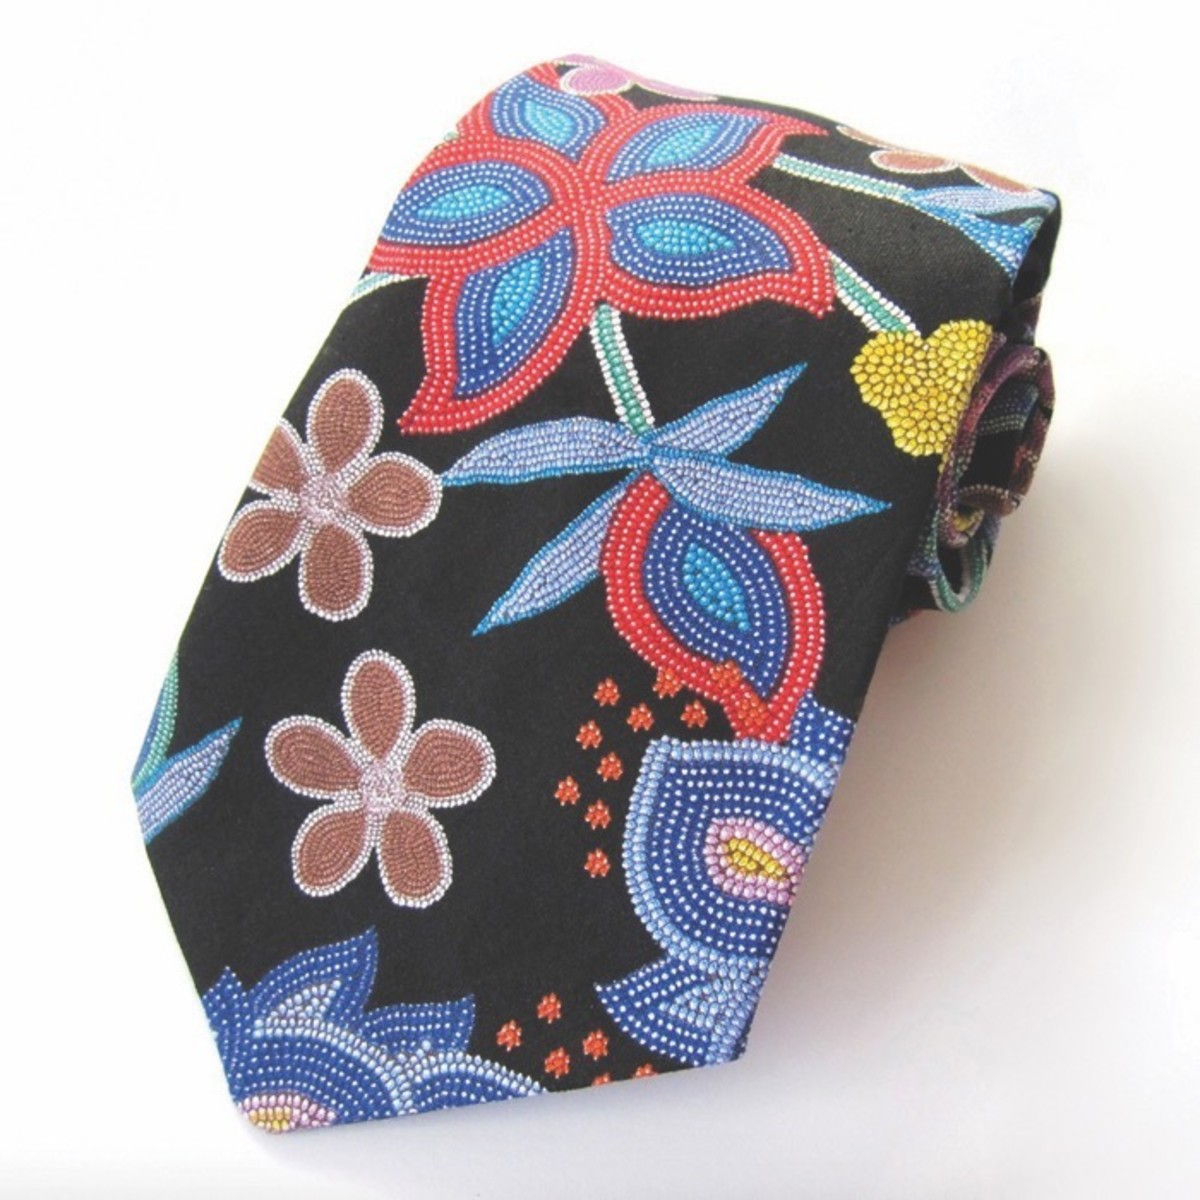 ICMN MAGAZINE_1_April_May_2017_Page_016_trading post_necktie by tammy beauvais_courtesy